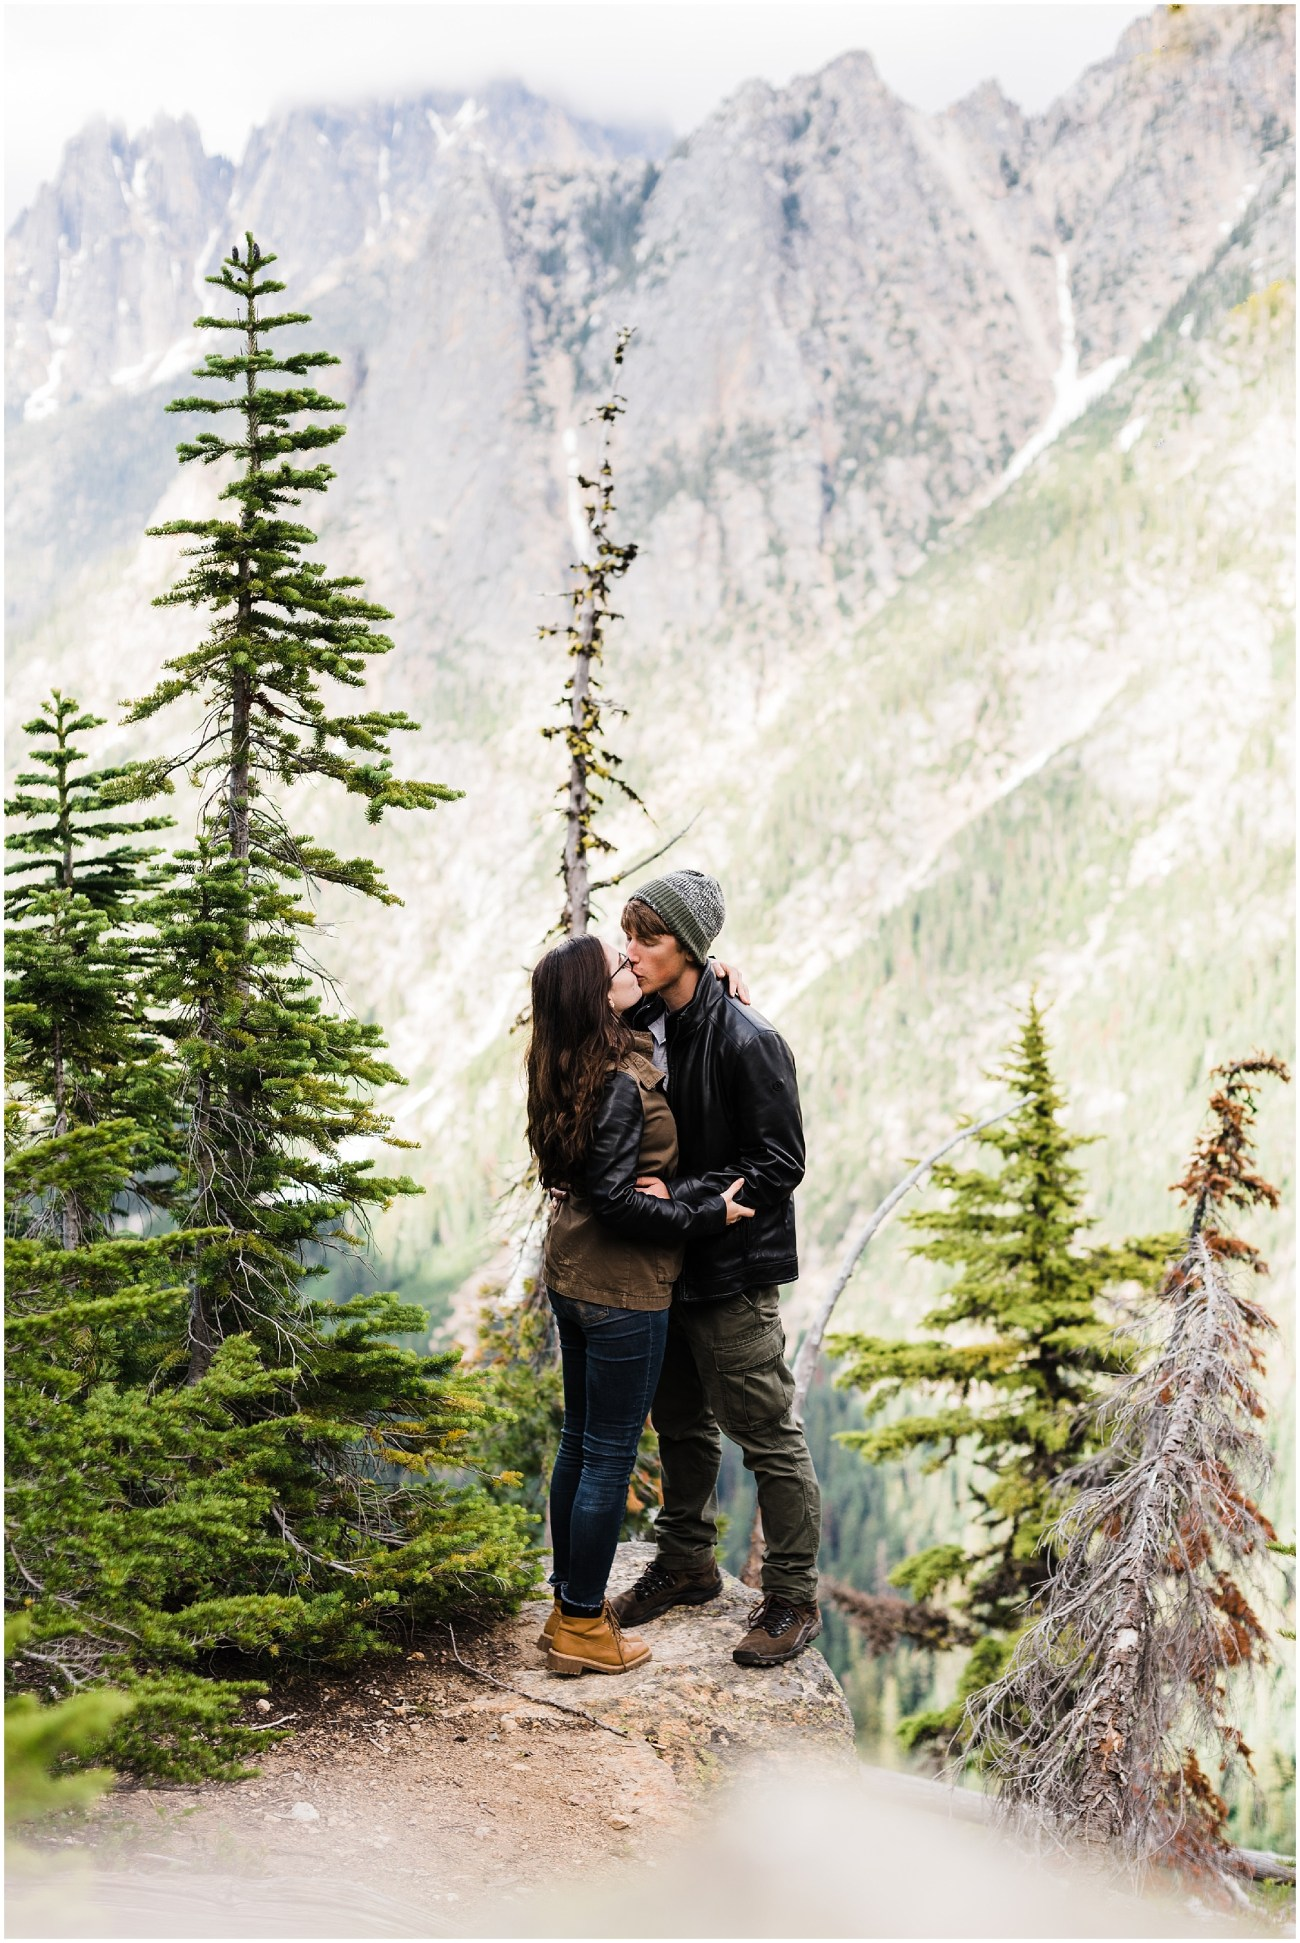 Photo of Laura & Devon on a ledge at the Washington Pass overlook in the North Cascades National Park